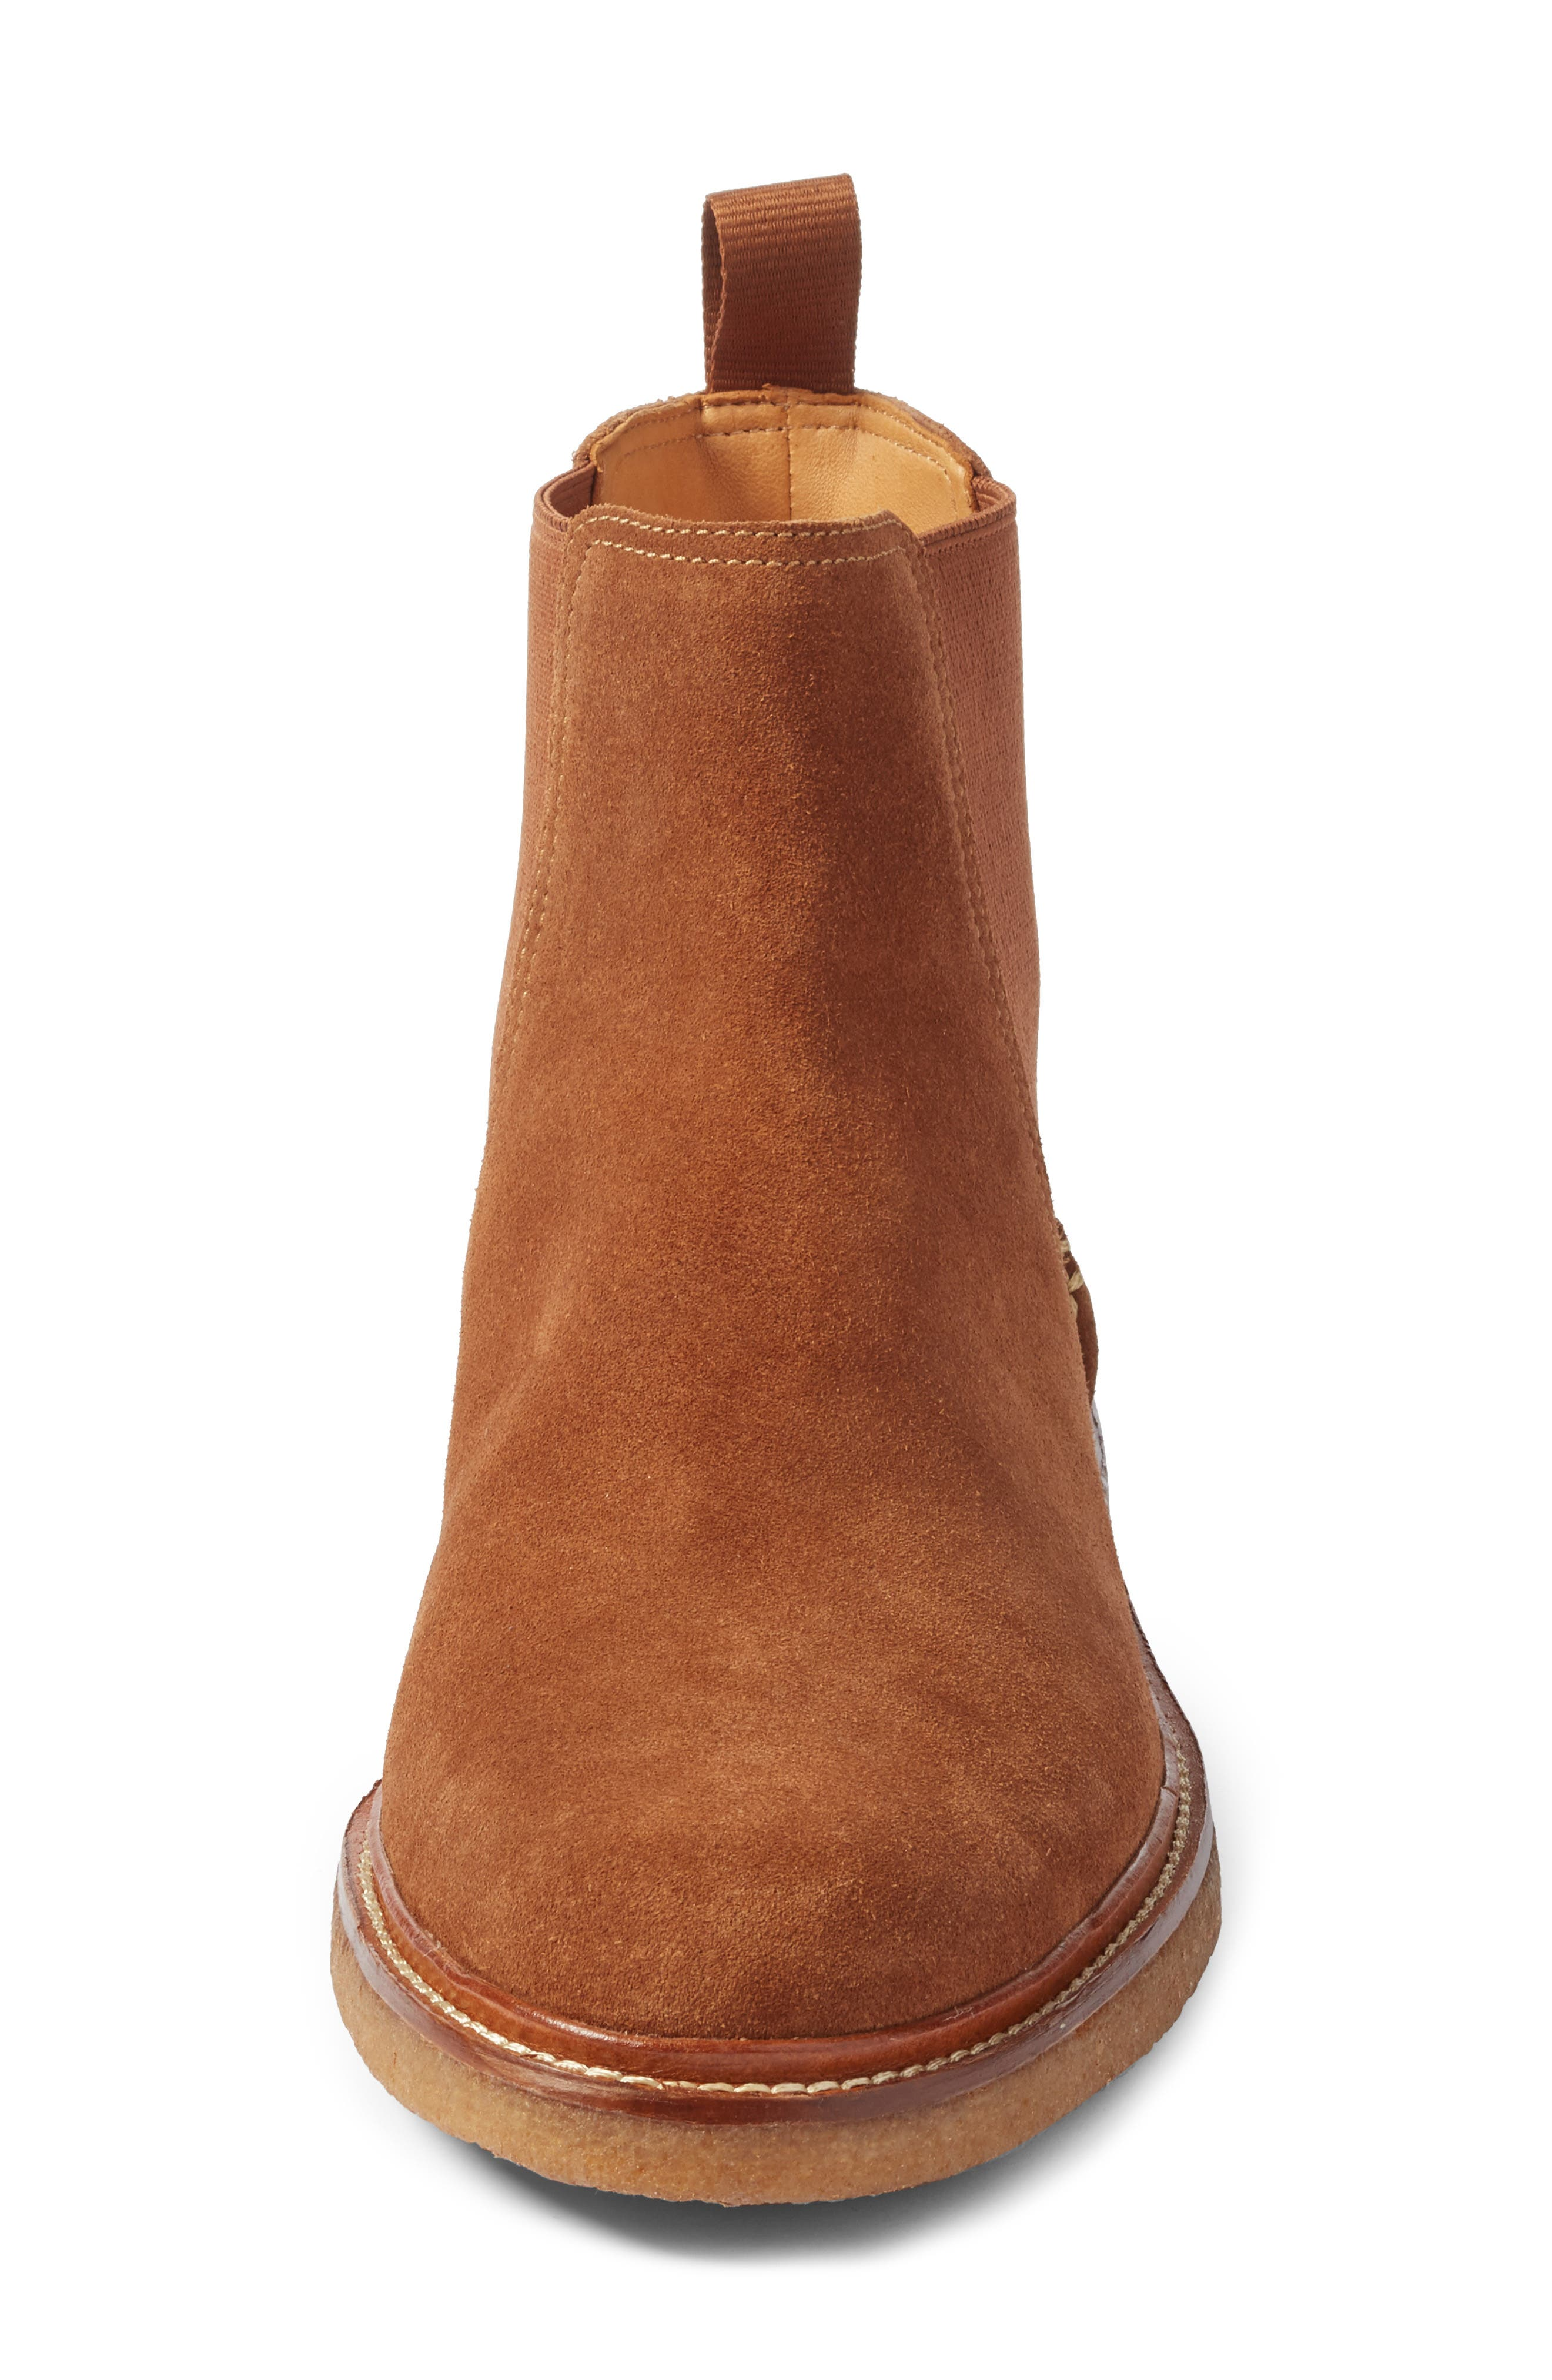 Leather Chelsea Boot,                             Alternate thumbnail 4, color,                             Dark Snuff Leather